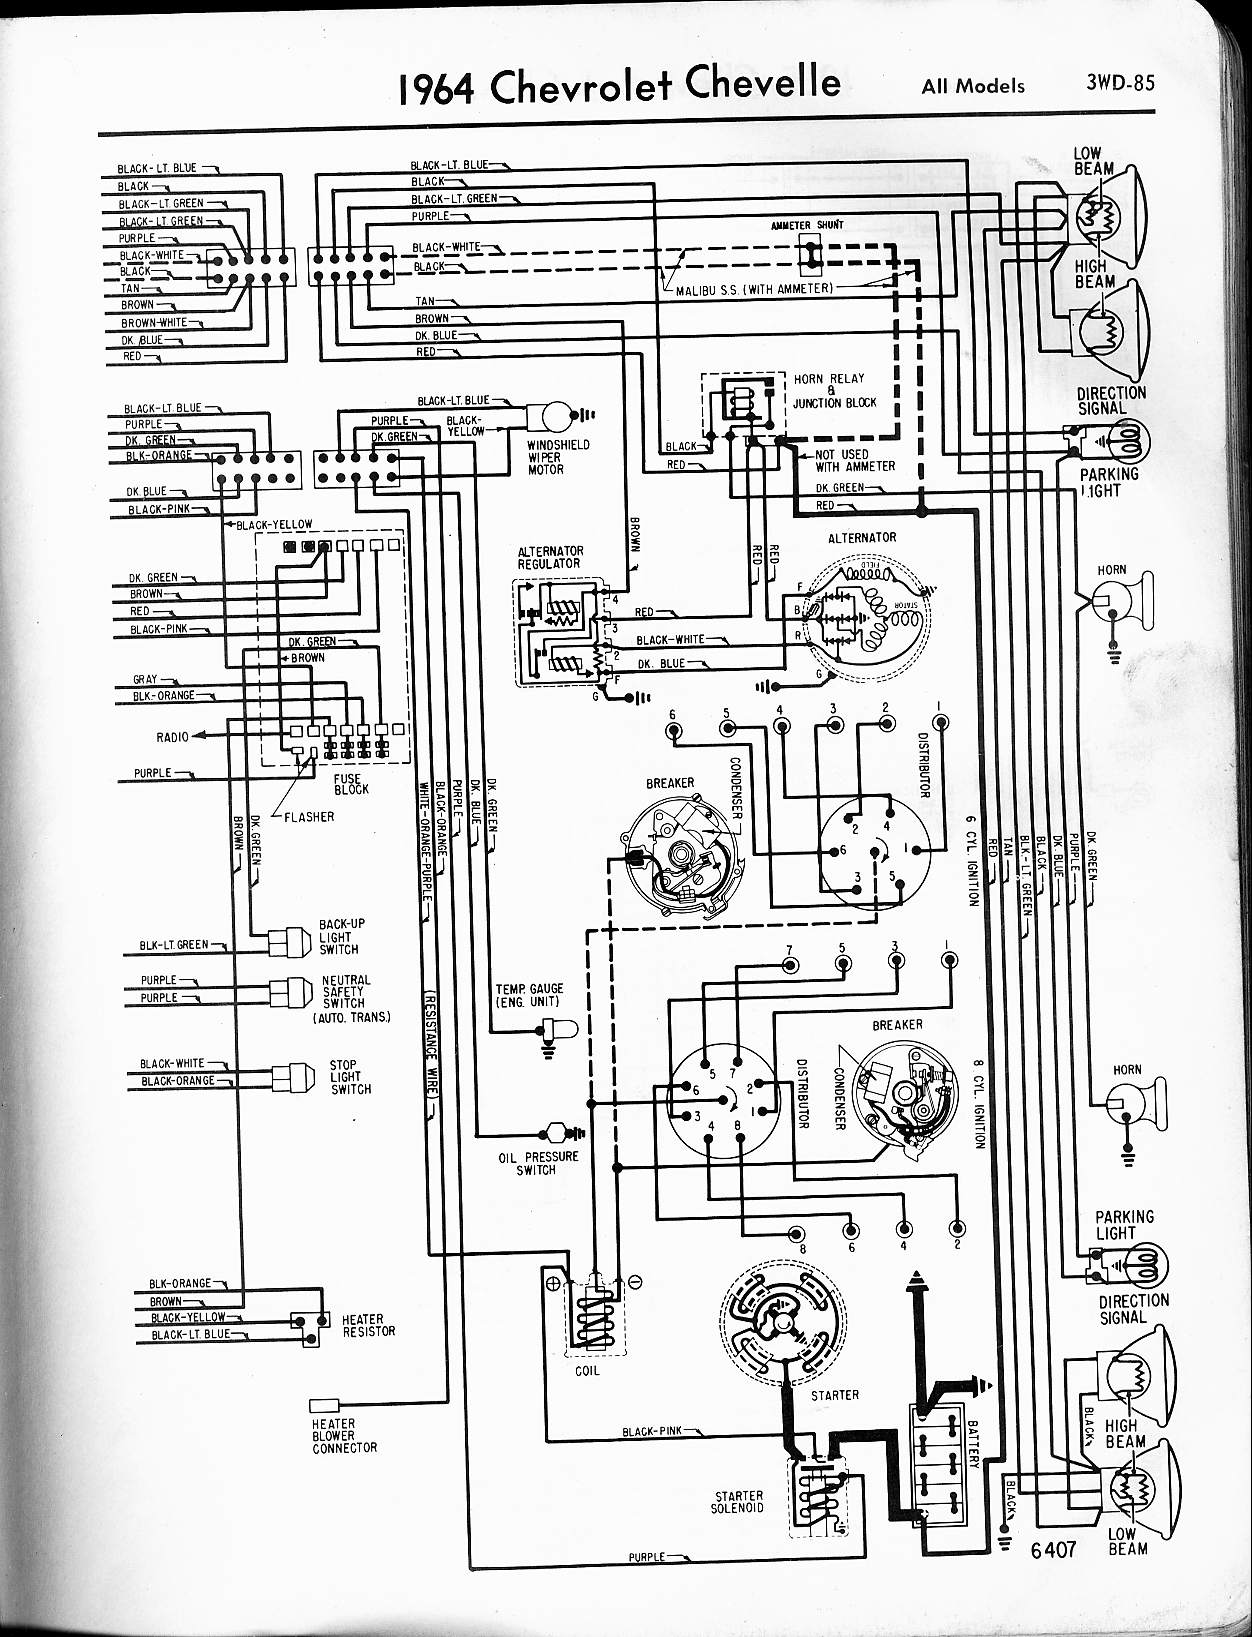 hight resolution of 1970 chevelle wiring diagram in addition for wiring diagrams rh 22 shareplm de 1970 chevelle engine wiring diagram 1970 chevelle radio wiring diagram